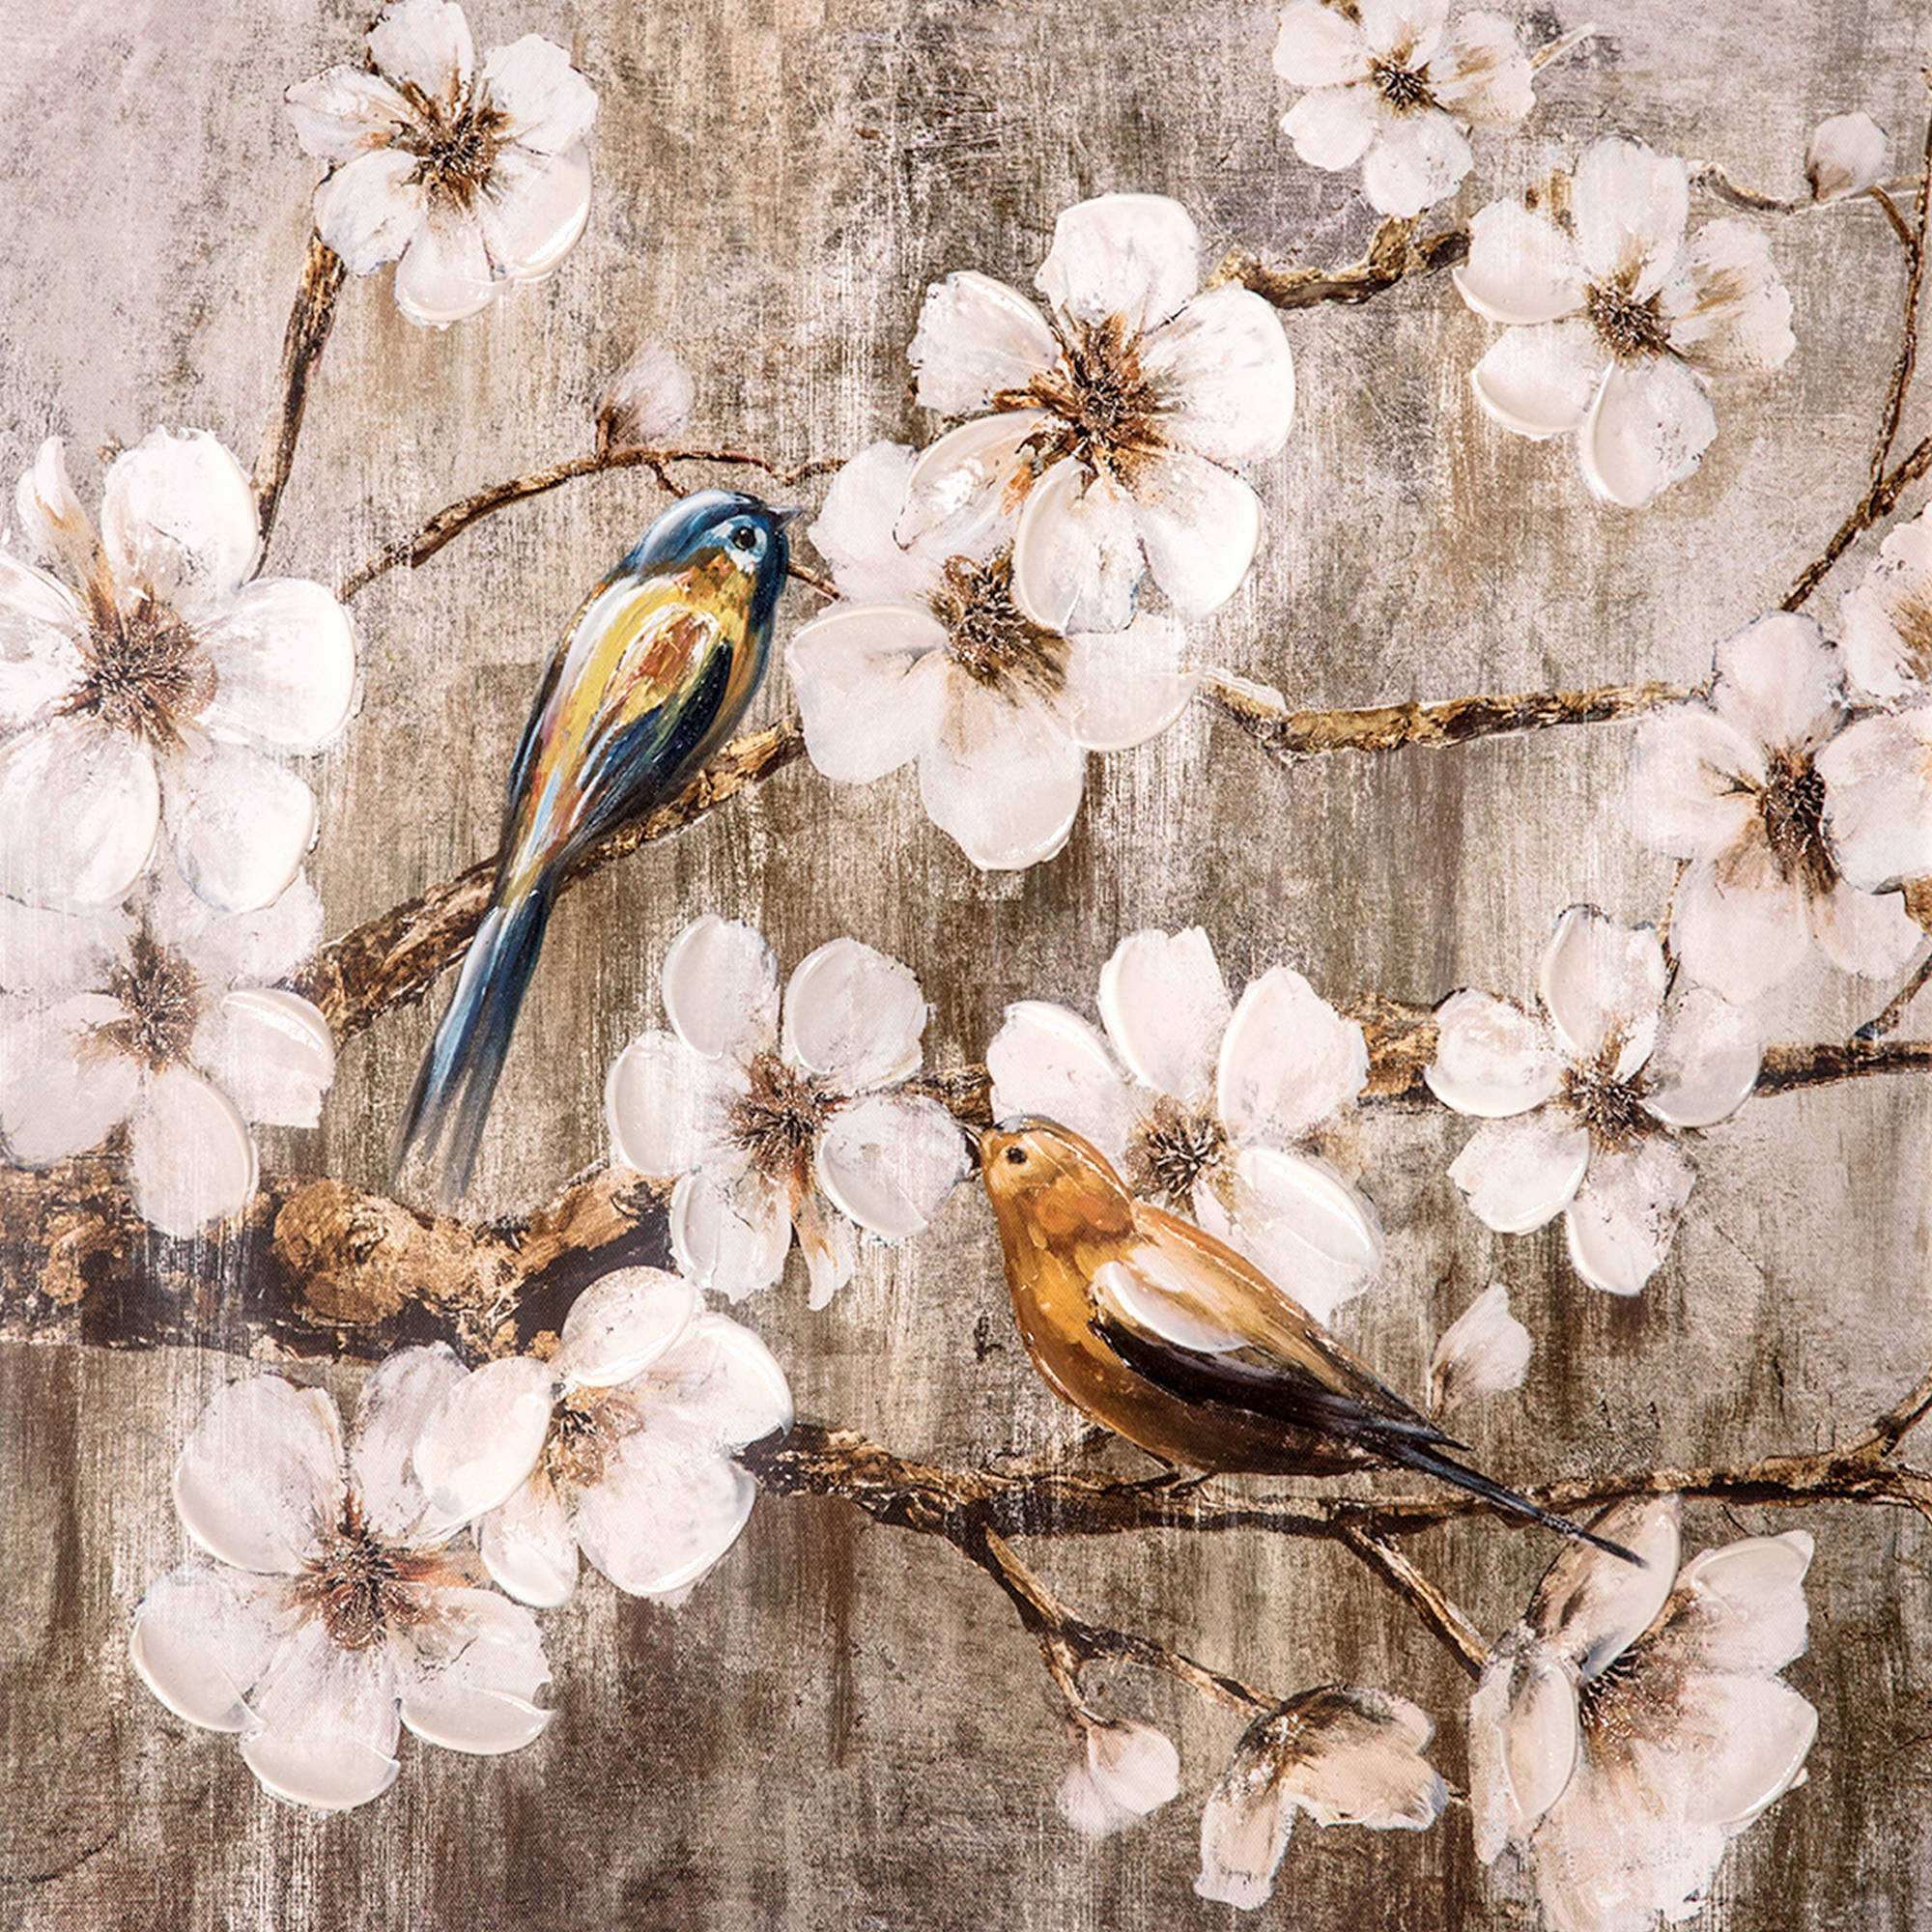 Painted Birds Canvas Painted Wall Artwork 20 x 20 in. by ZHEJIANG WADOU CREATIVE ART CO LTD